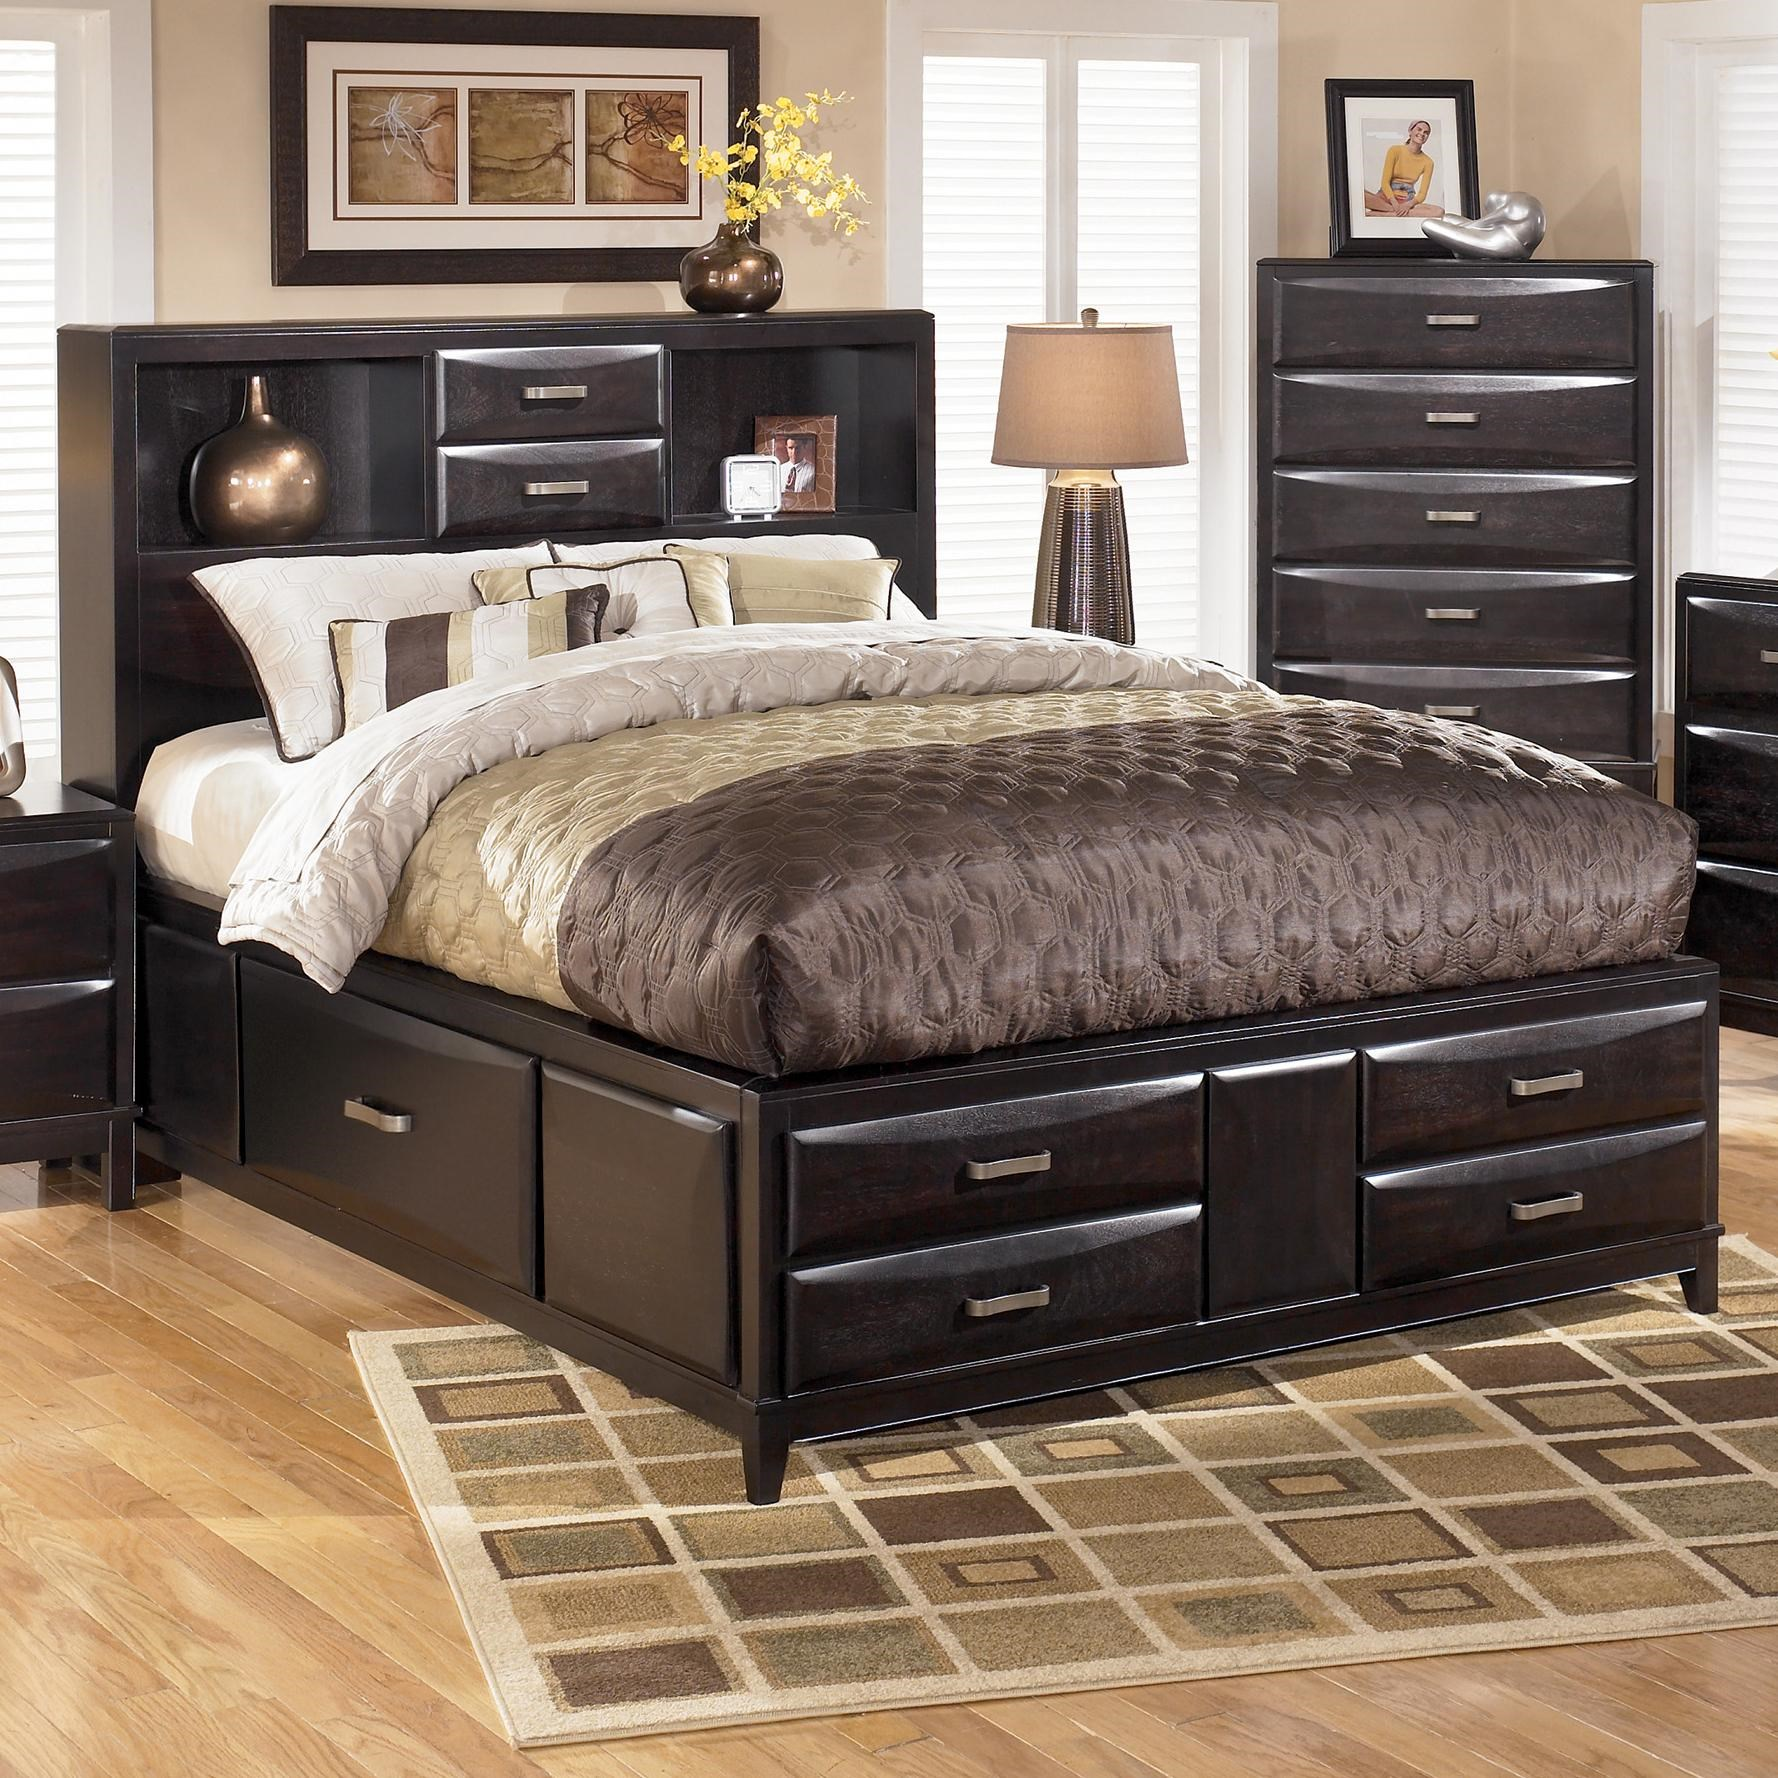 Ashley Furniture Kira Queen Storage Bed Showplace Rent